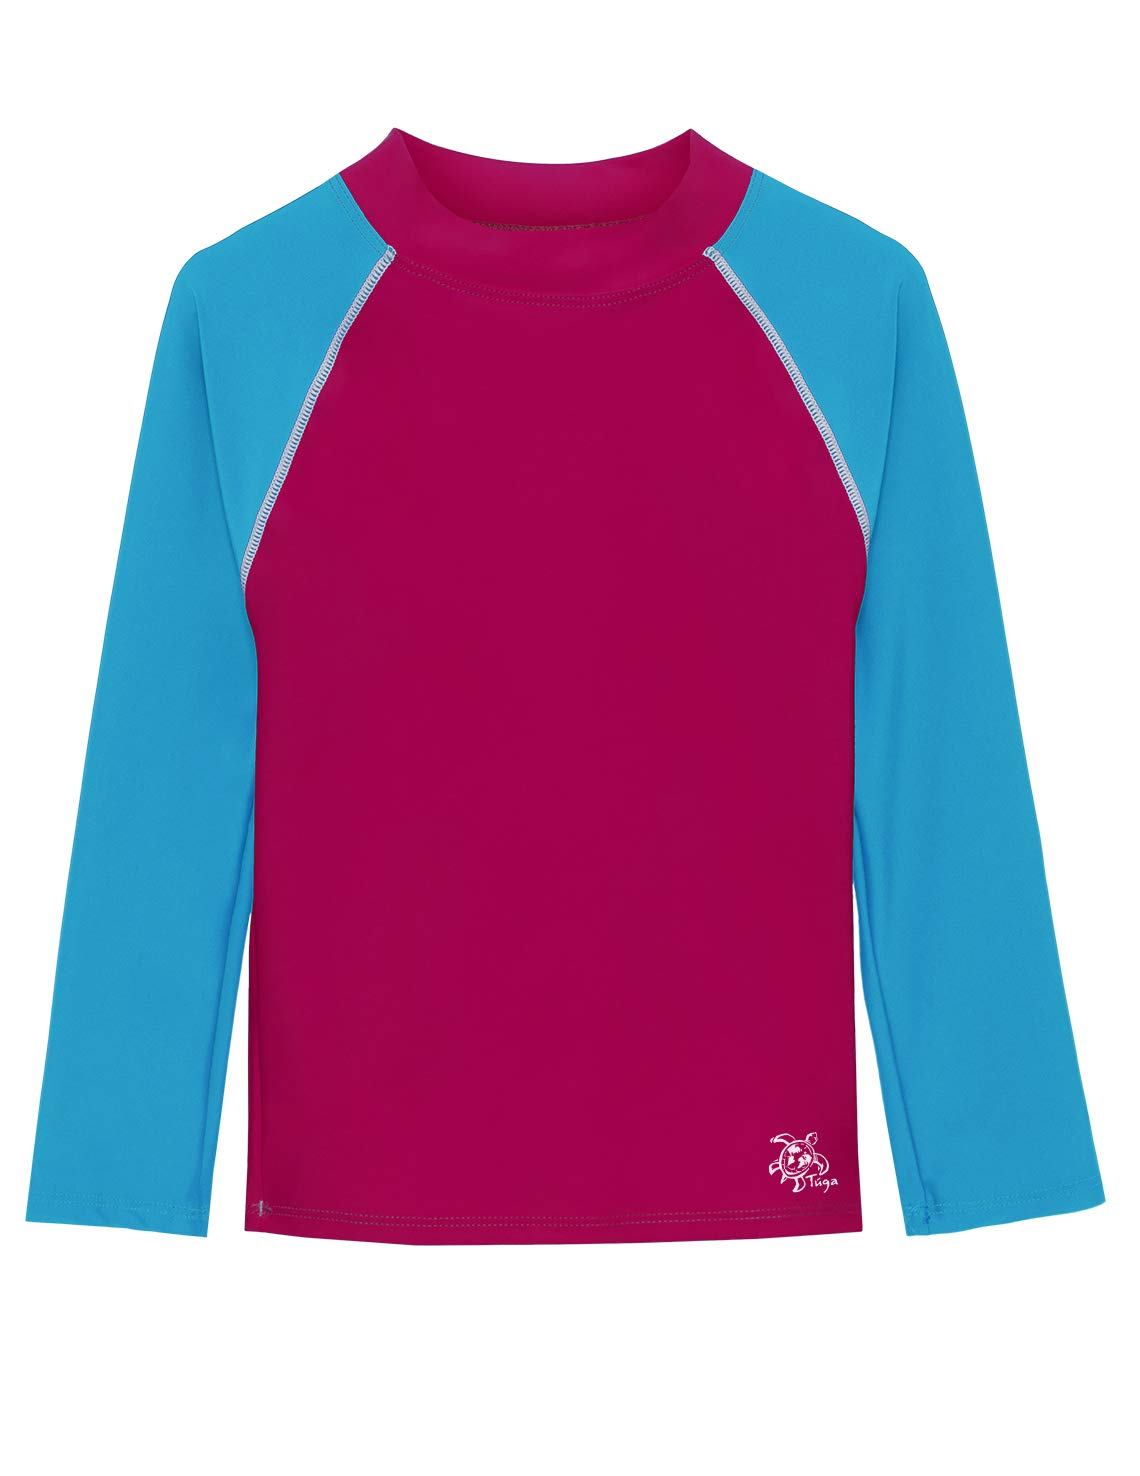 Tuga Basics Girls L/S Rash Guard (UPF 50+), Cranberry/Spa Blue, 13/14 yrs by Tuga Sunwear